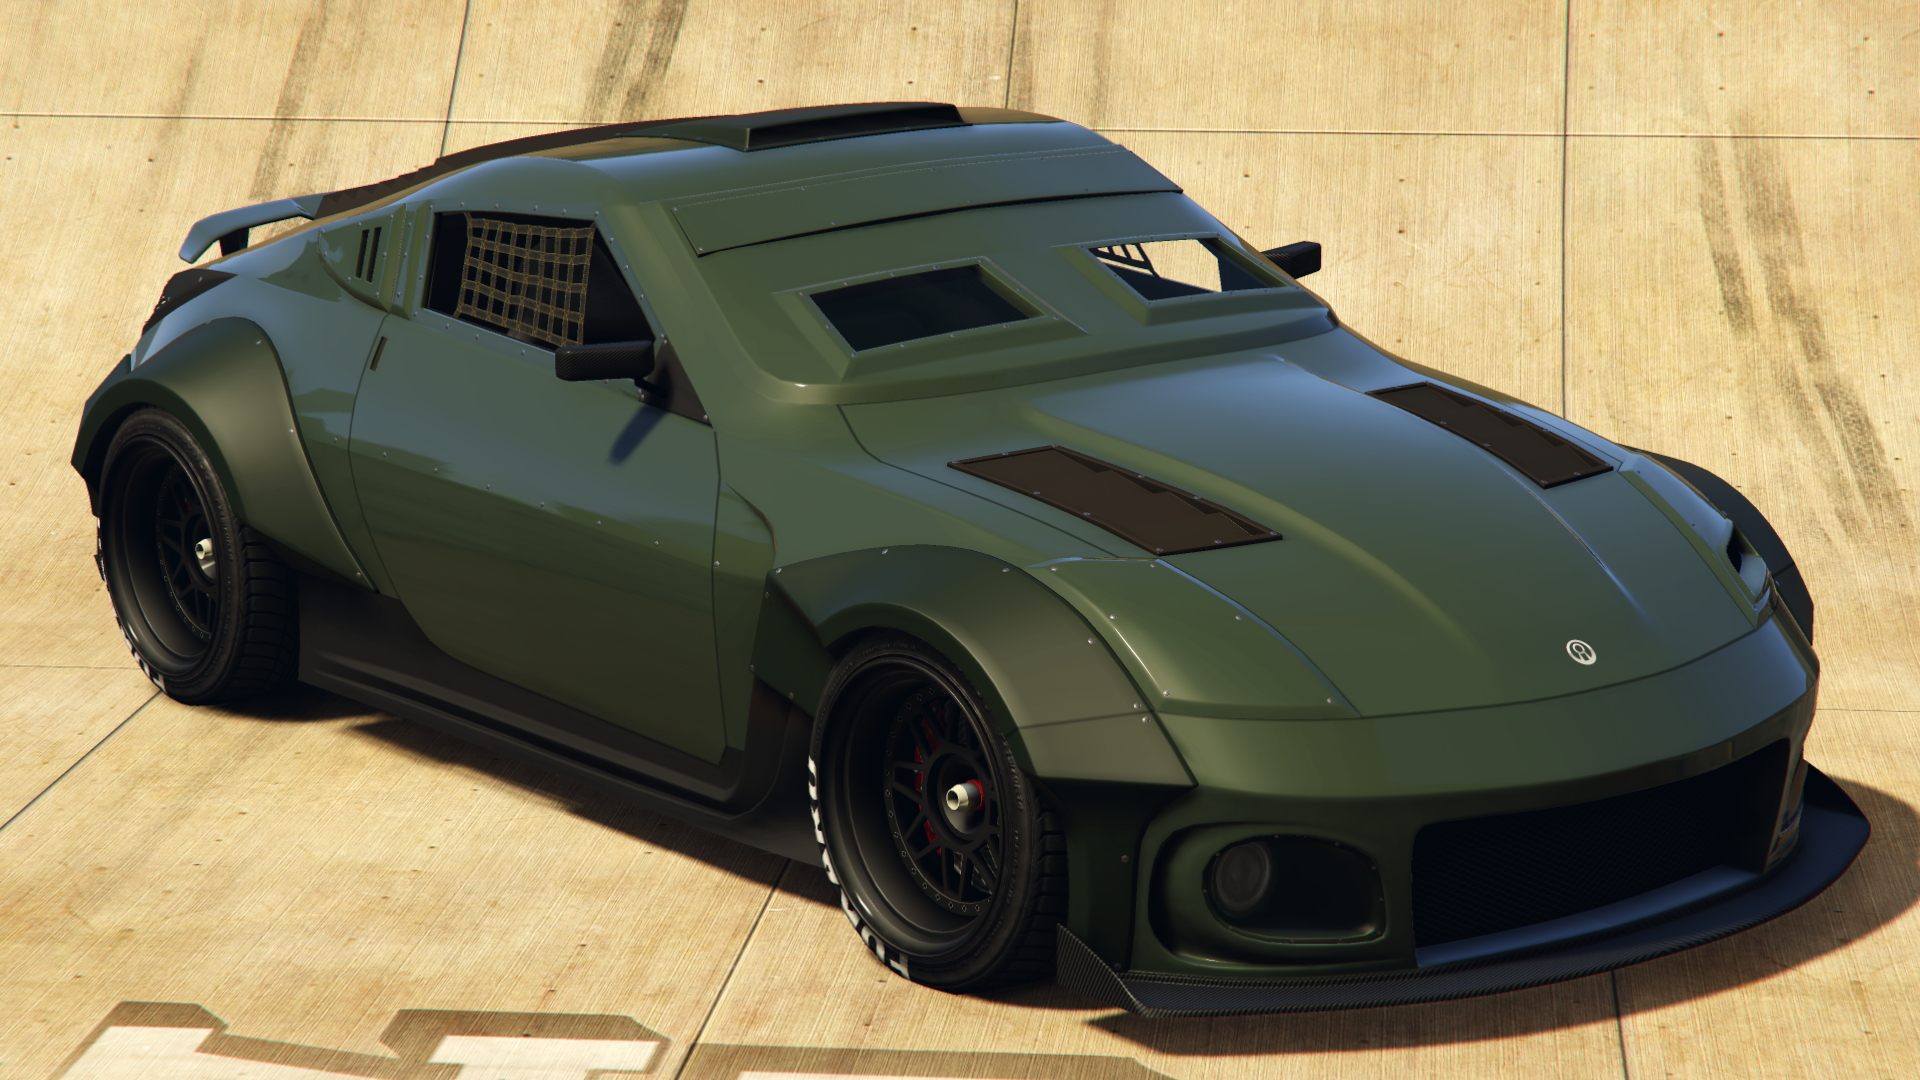 gta online arena war vehicles in heists